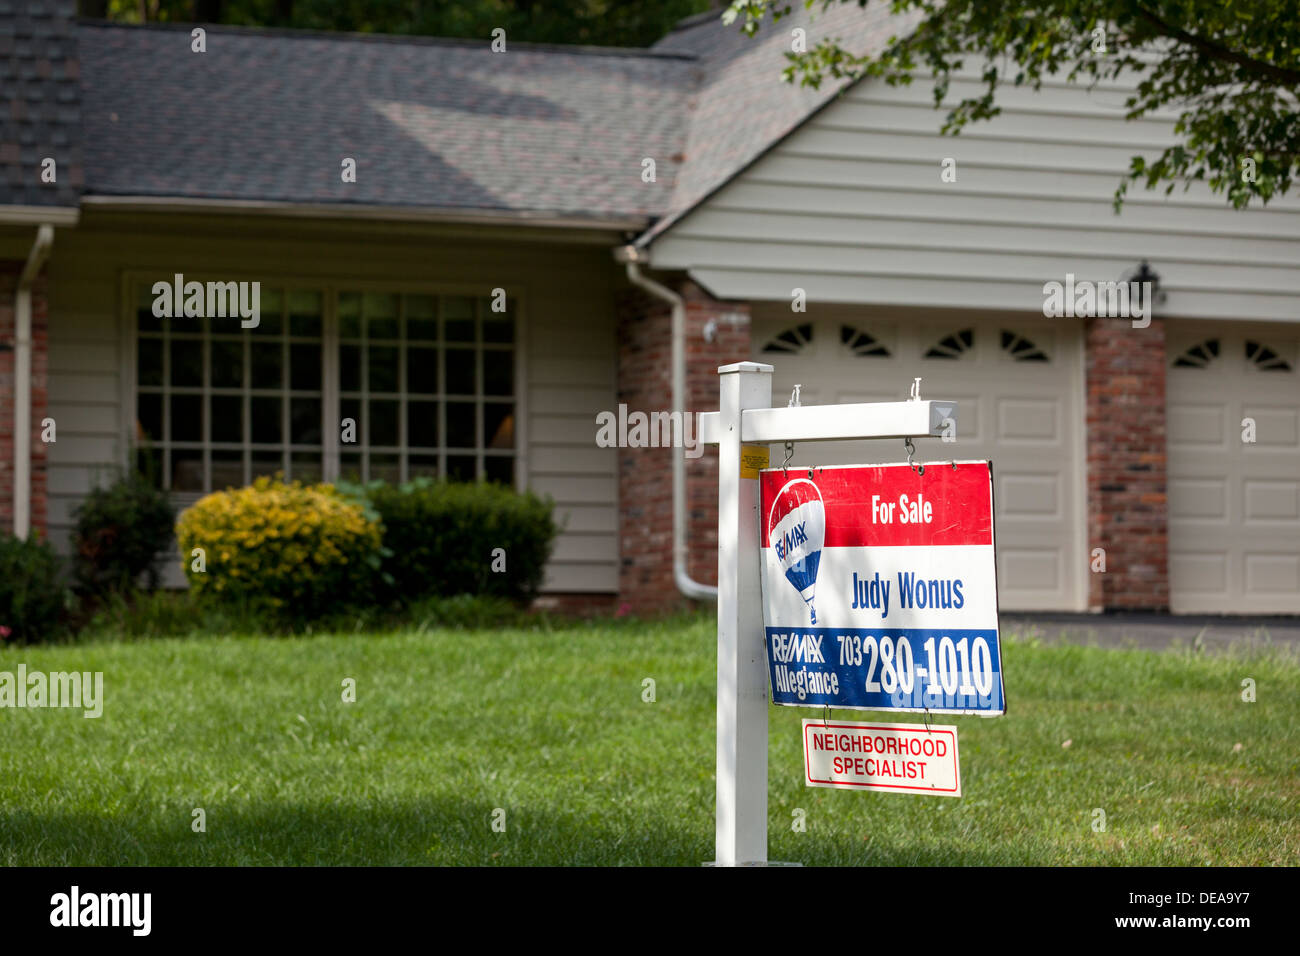 Remax for sale sign on single family home - USA - Stock Image